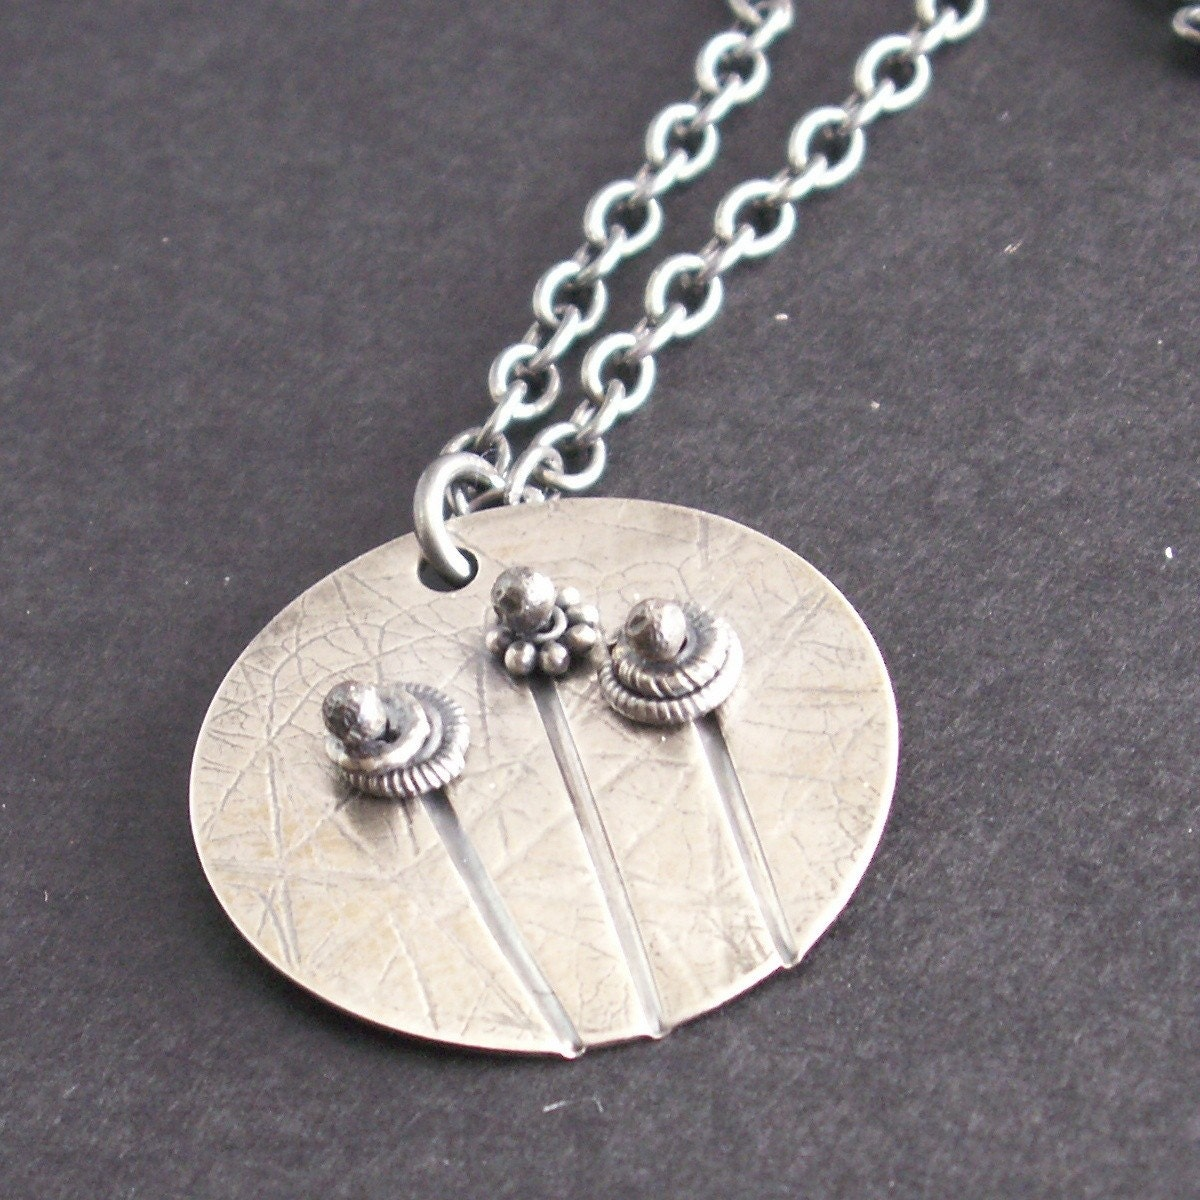 handcrafted jewelry necklace sterling silver flowers poppies